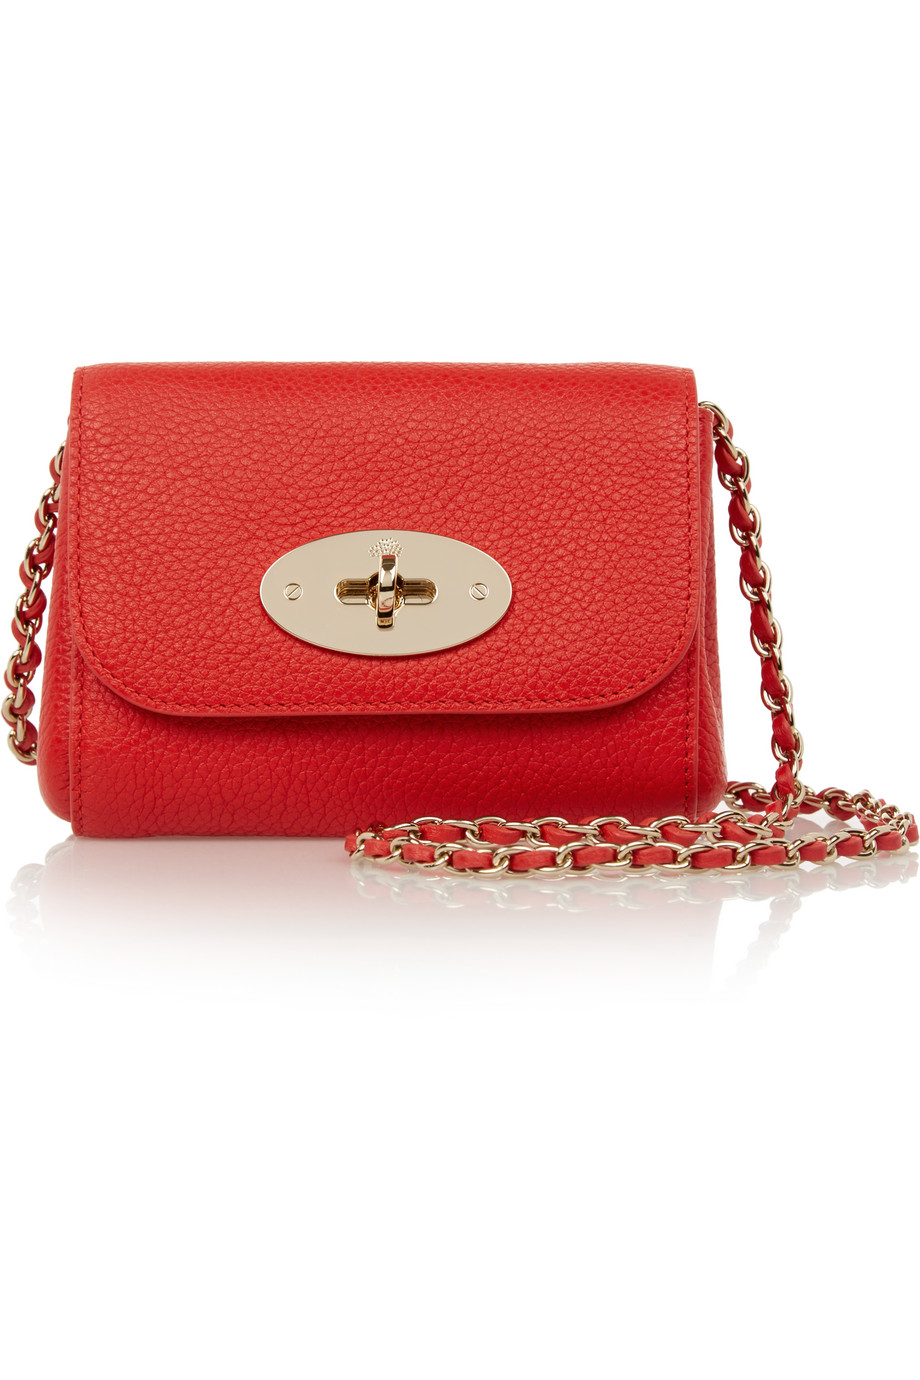 Mulberry Lily Mini Textured-Leather Shoulder Bag, Crimson, Women's